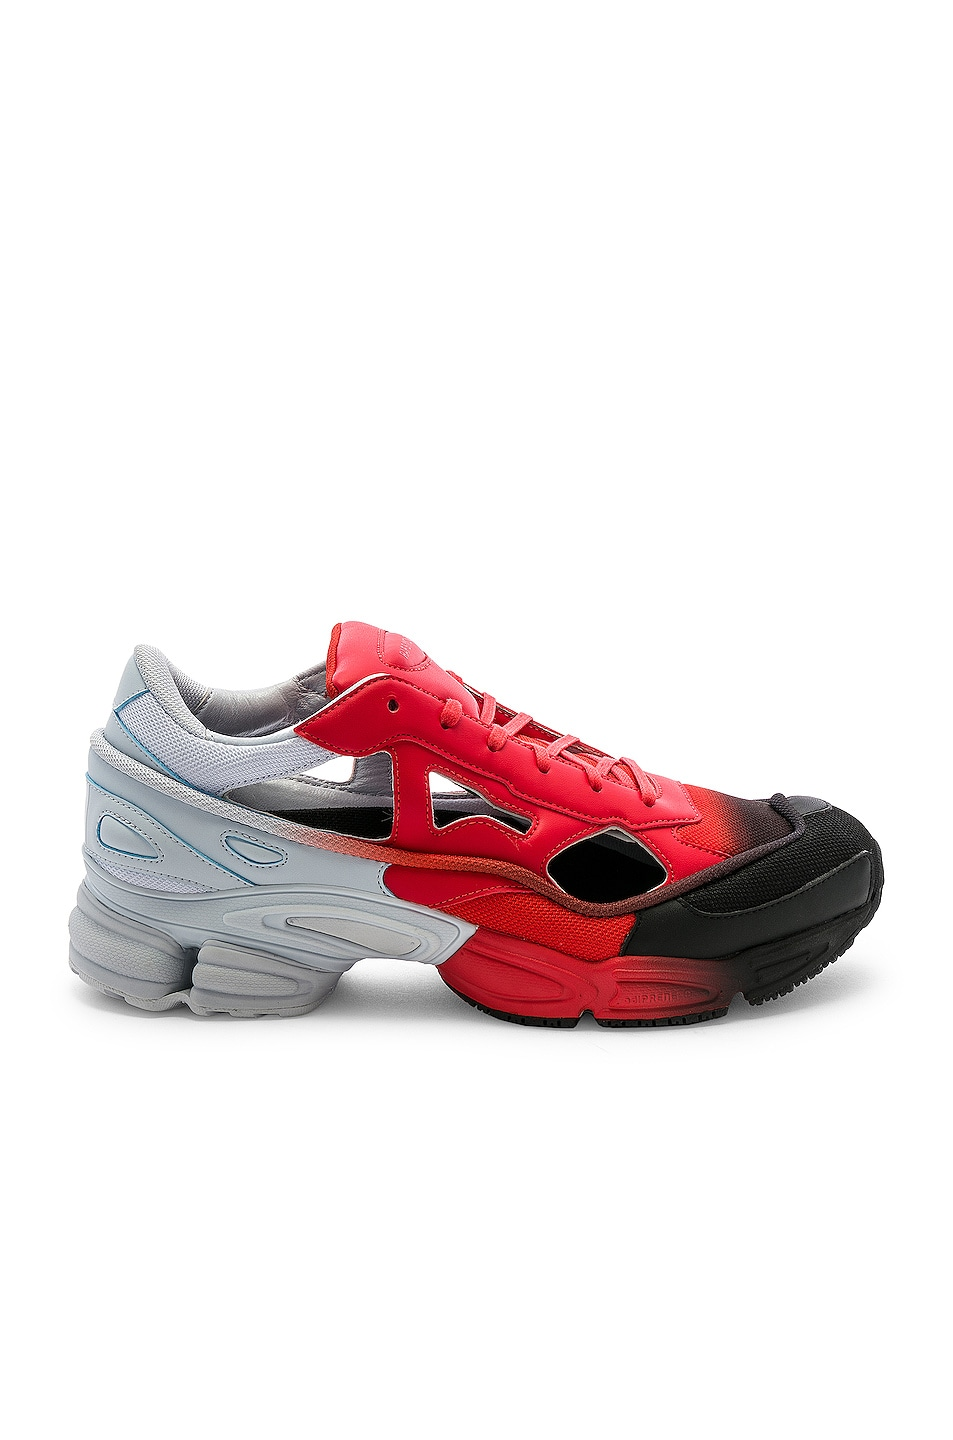 Image 2 of adidas by Raf Simons Replicant Ozweego Sneaker in Red & Halo Blue & Black